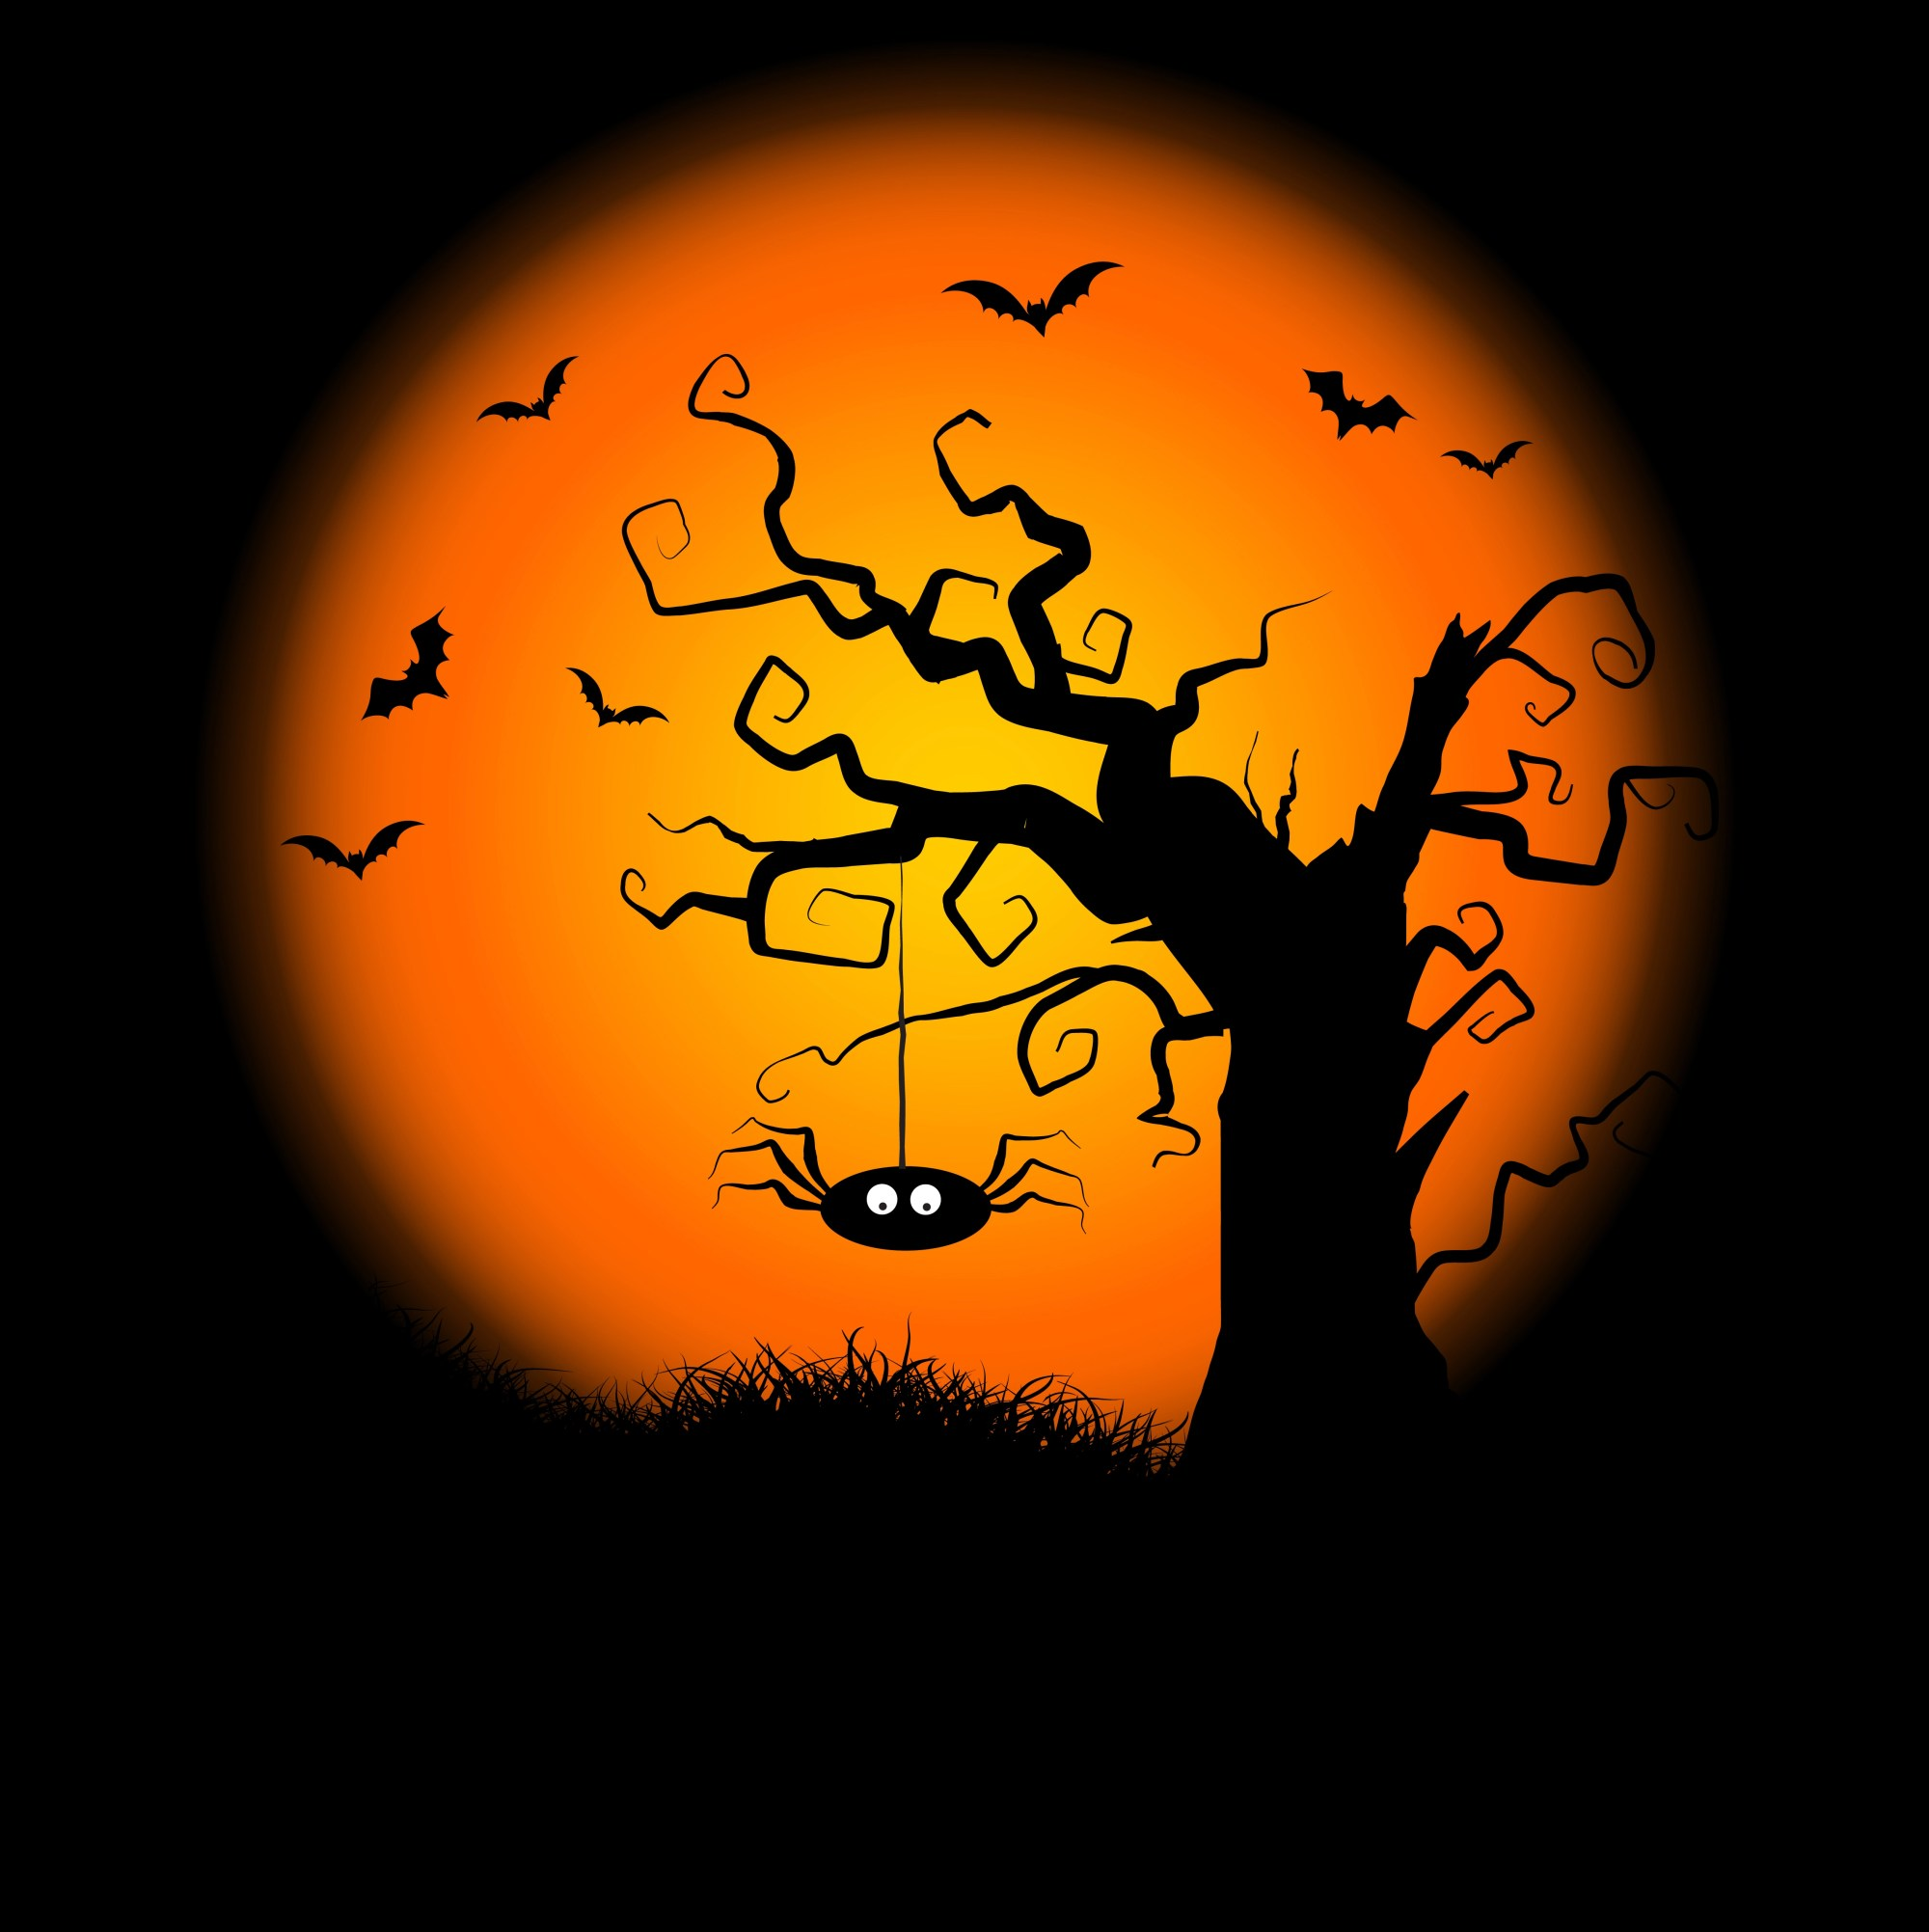 hight resolution of spooky halloween tree background download free vector art stock graphics images